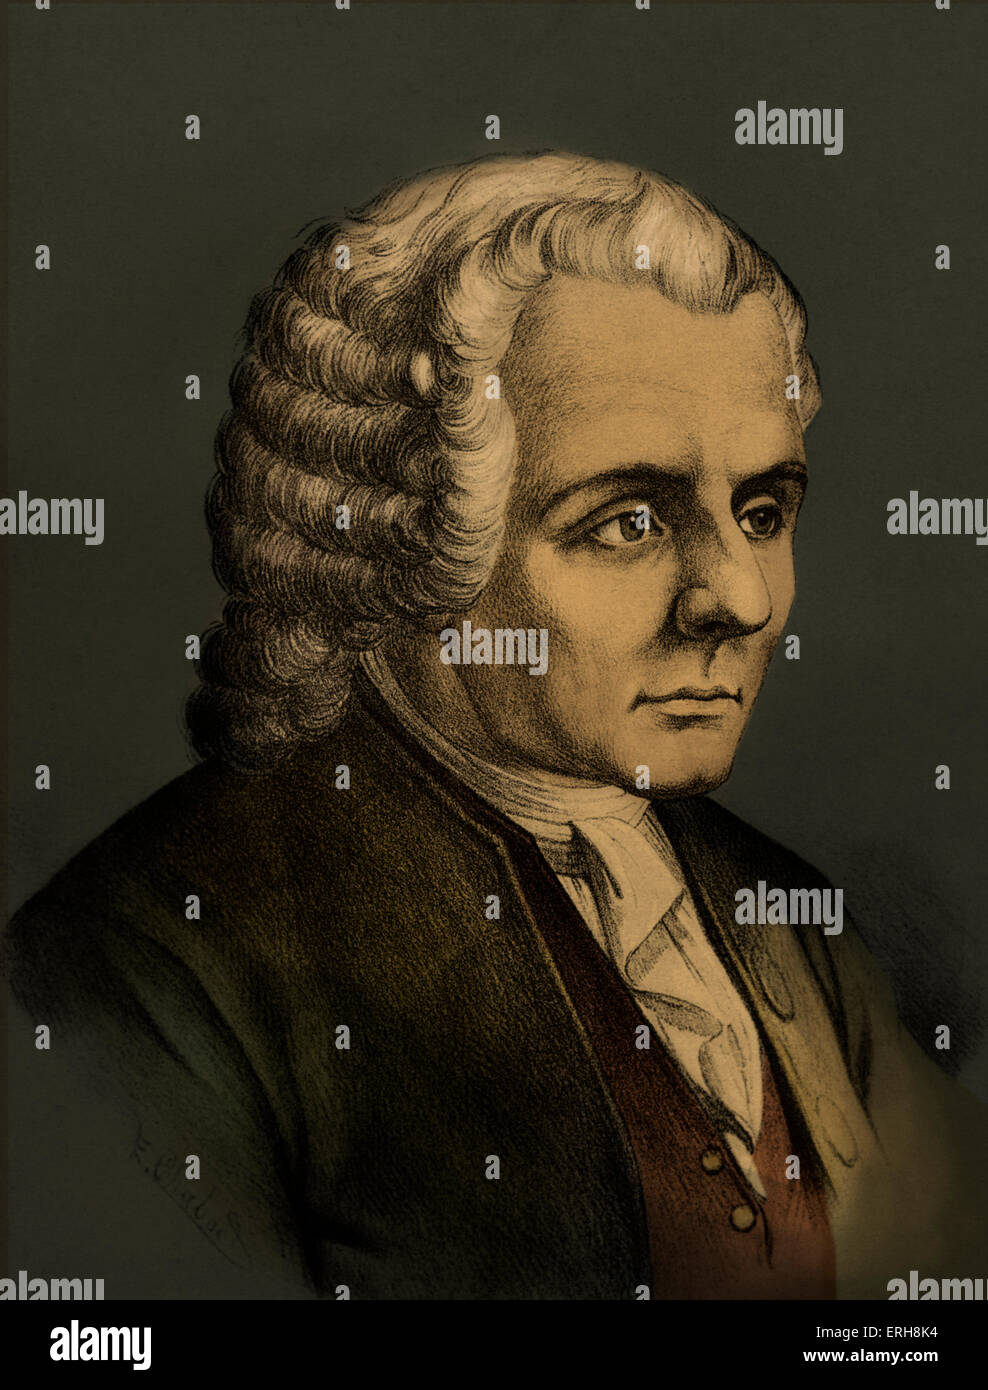 Jean-Jacques Rousseau -  Swiss born French philosopher of Enlightenment. His political ideas influenced the French - Stock Image